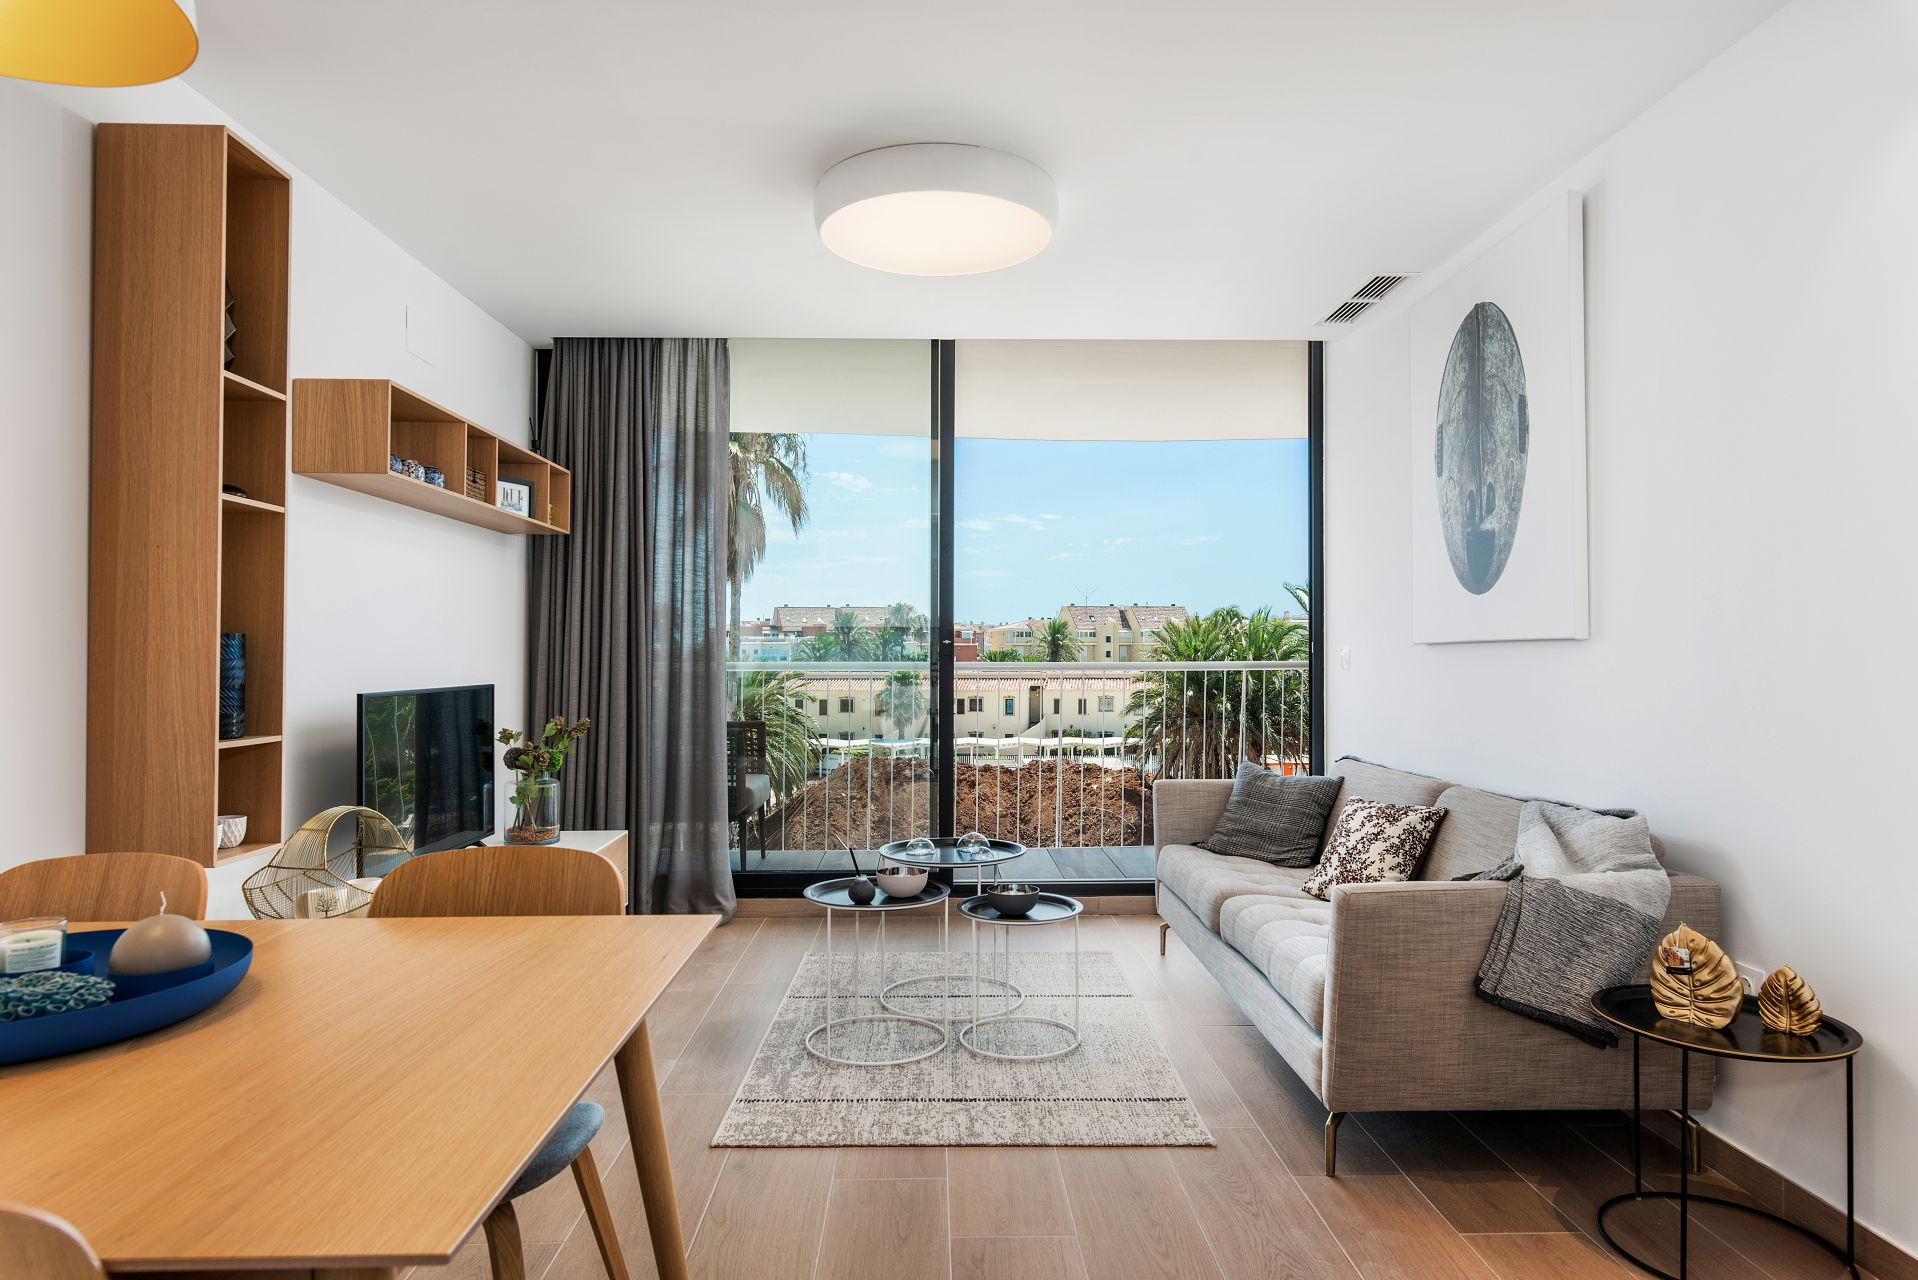 Denia Beach - 1, 2 and 3 bedroom apartments with terrace overlooking the sea or with views over the Montgó mountain, at the beach of La Almadraba beach 34